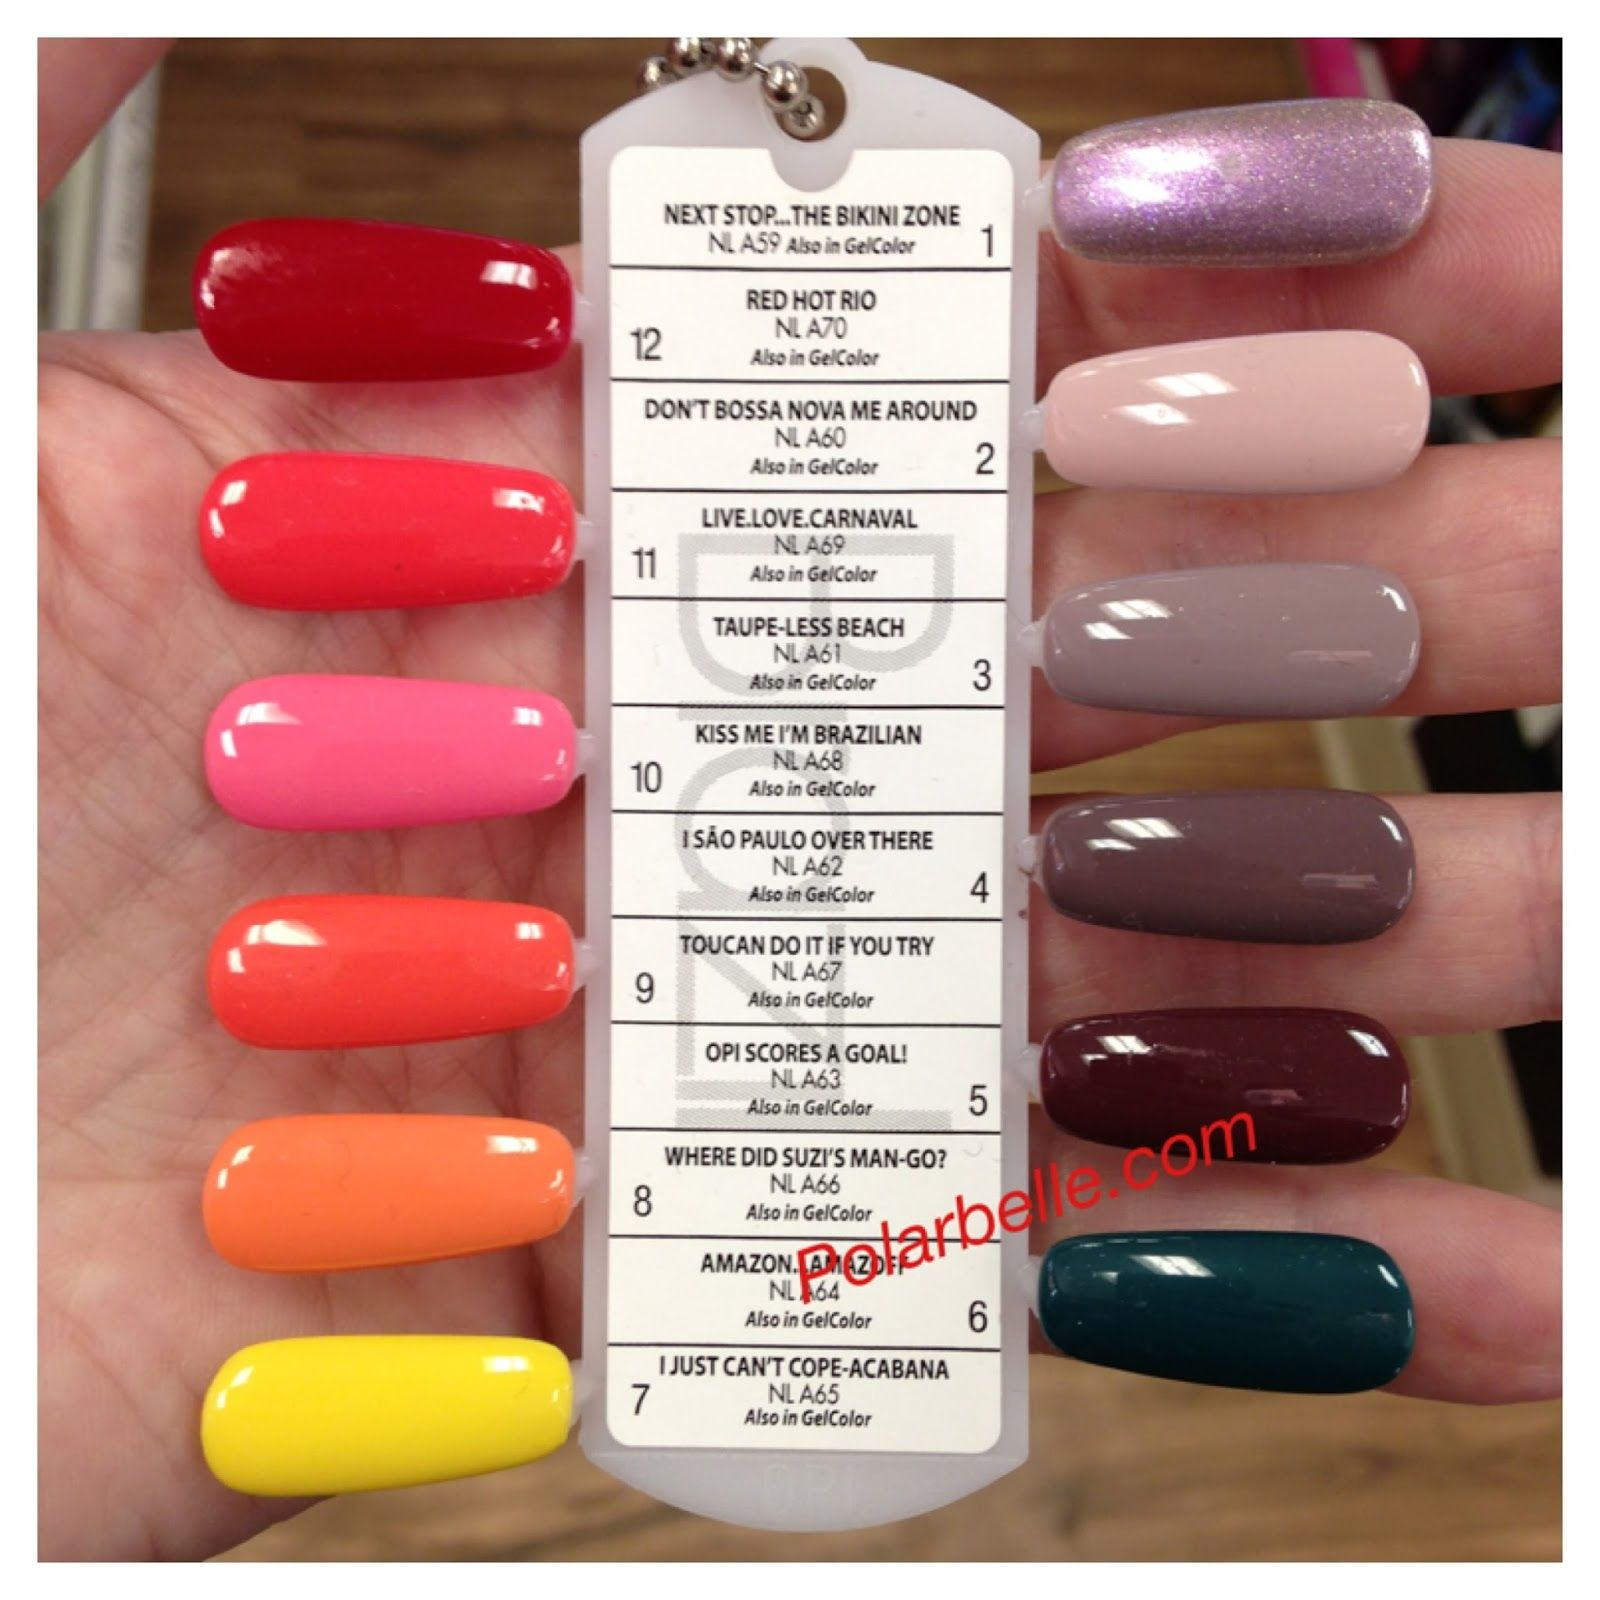 New Opi Brazil Nail Polish Collection Pics Swatches With Names Polarbelle Nail Polish Color Names Opi Gel Nails Opi Gel Nail Polish